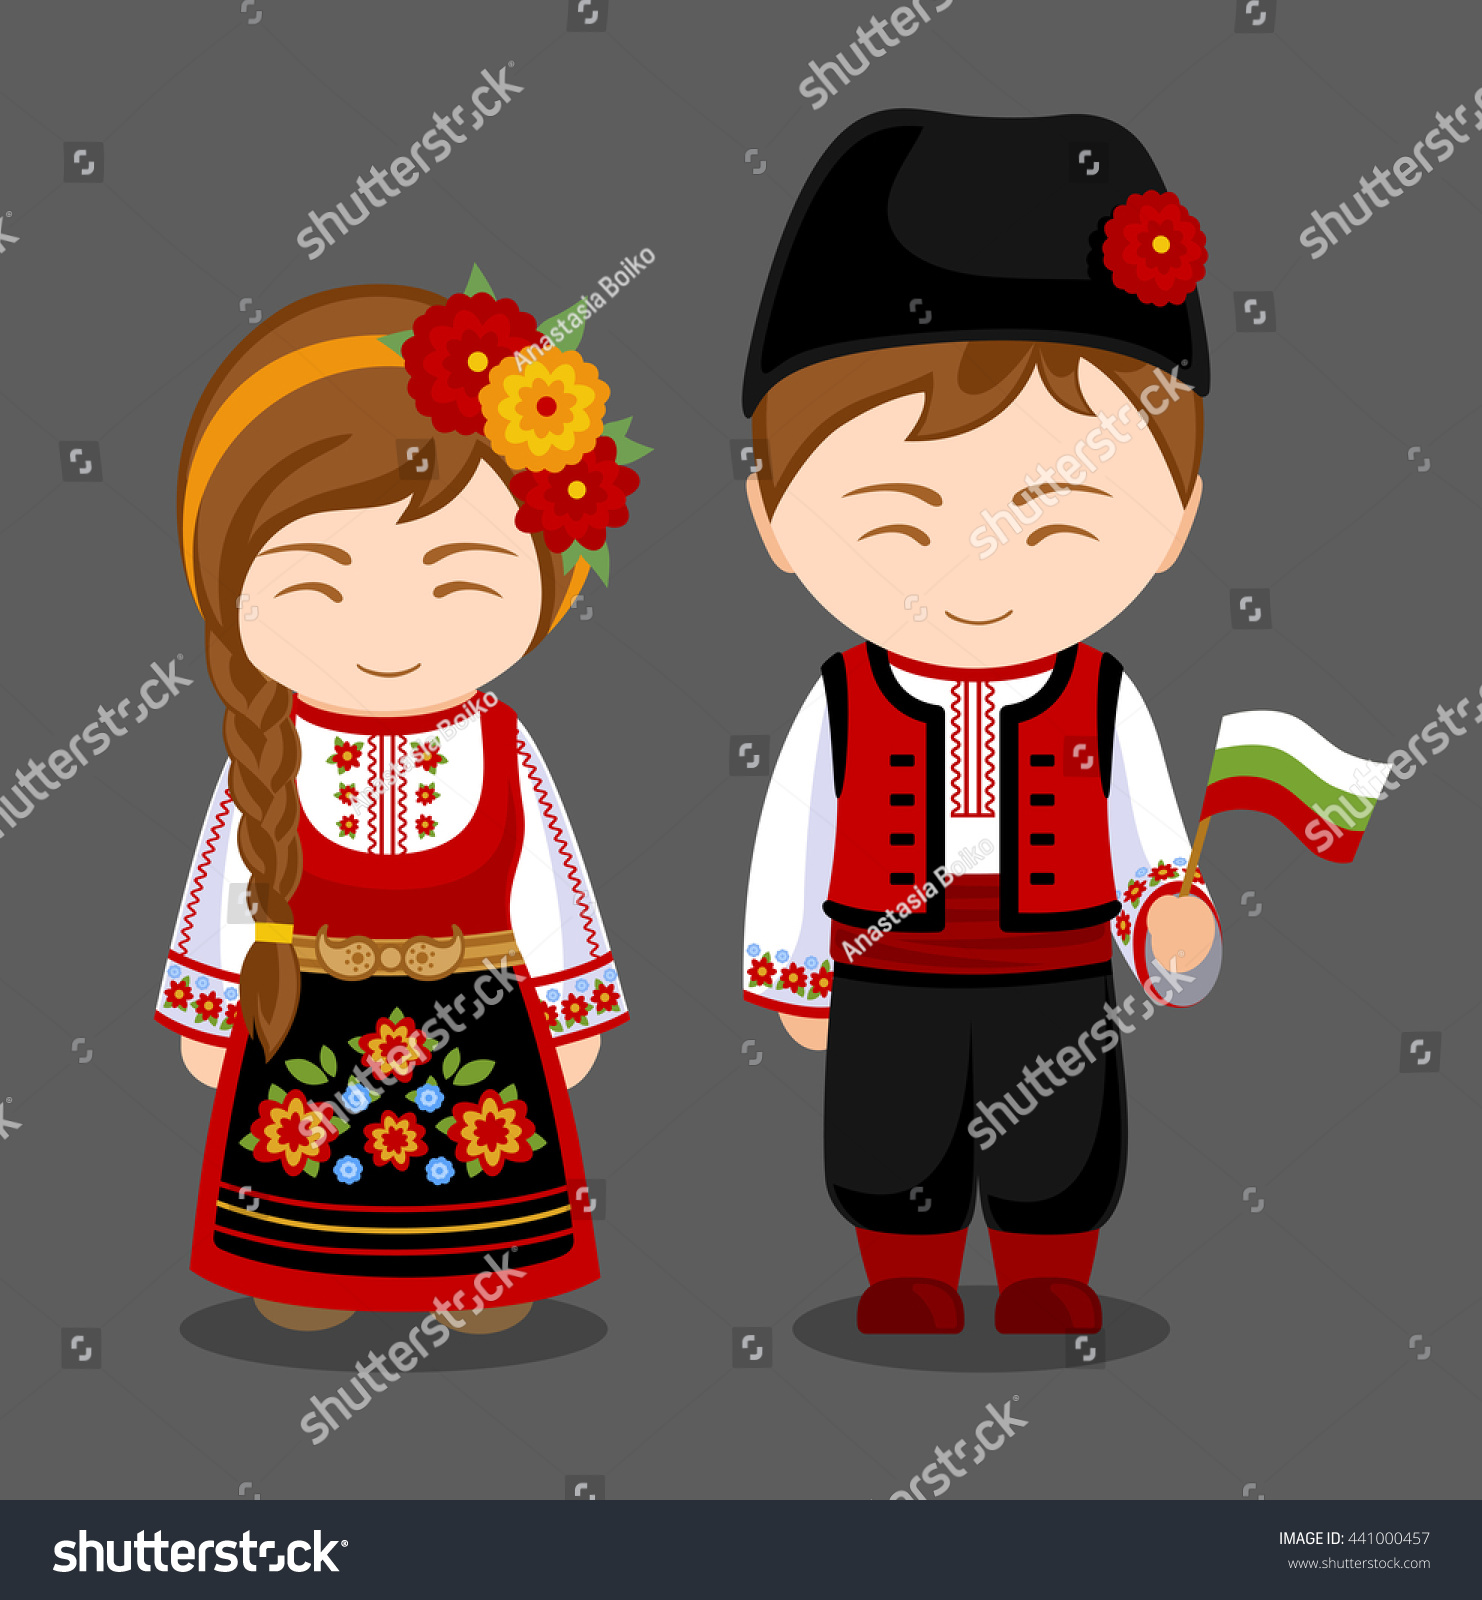 Welcome World League Of Beauty And Fashion Official Web: Bulgarians National Dress Flag Man Woman Stock Vector